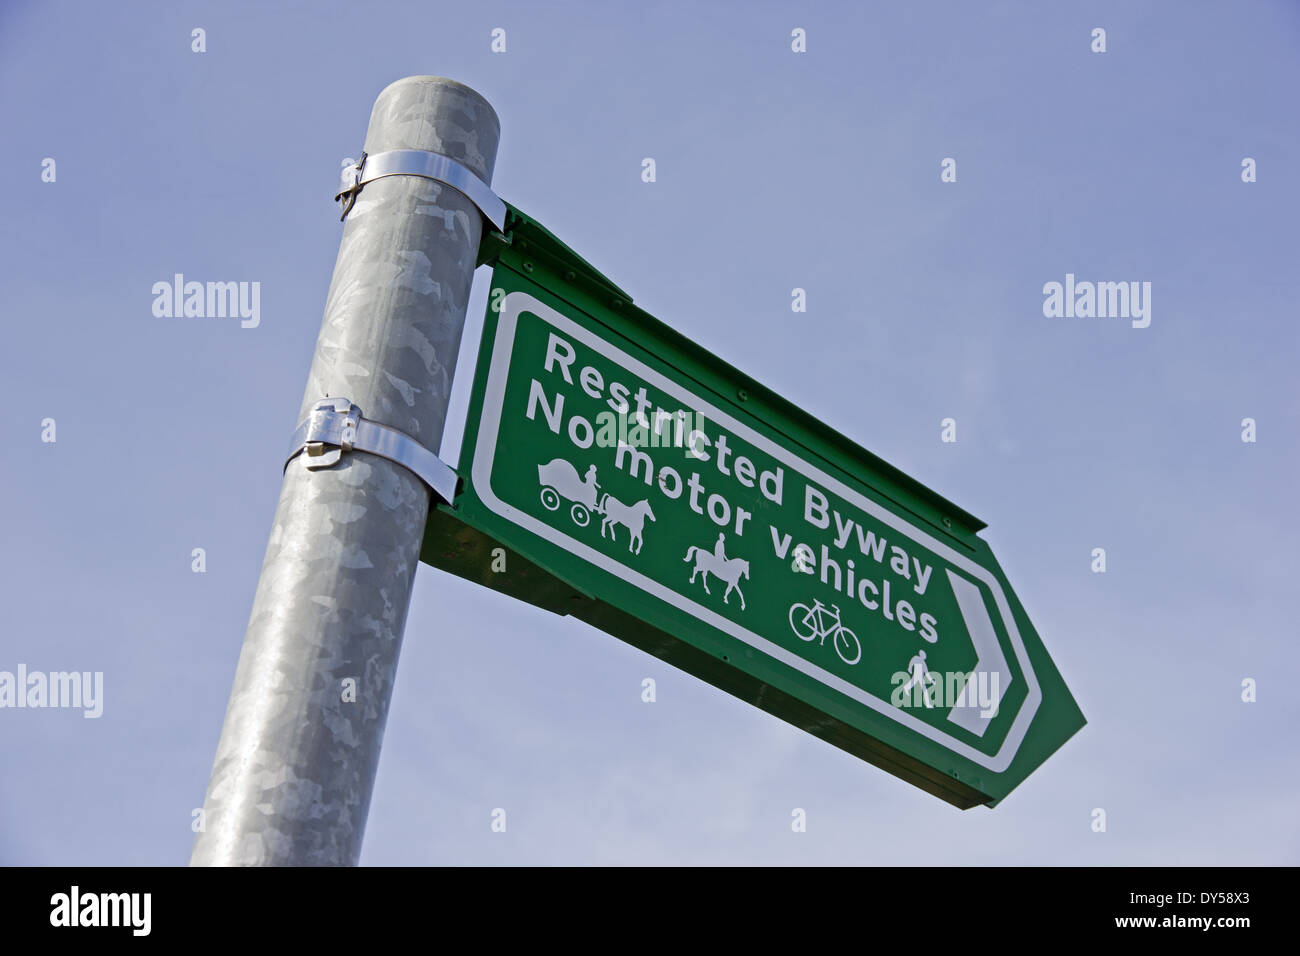 Restricted Byway sign, No Motor Vehicles - Stock Image